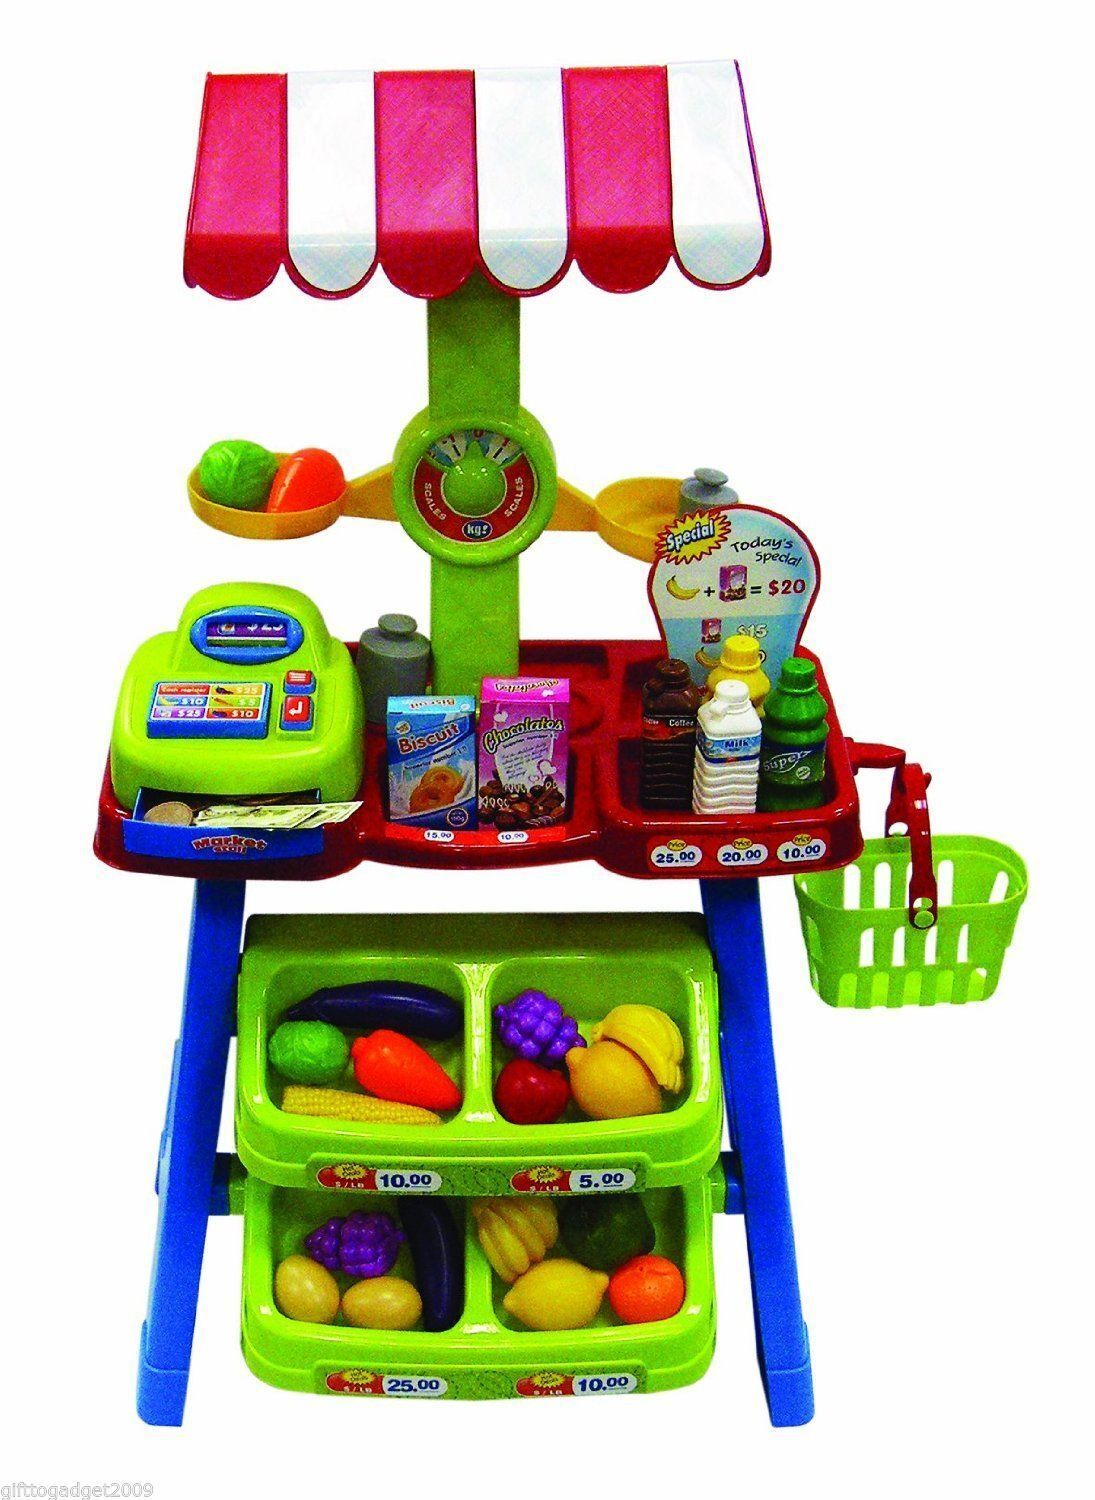 Market Stall Stall Stall with Cash Register and Accessories New 120eda